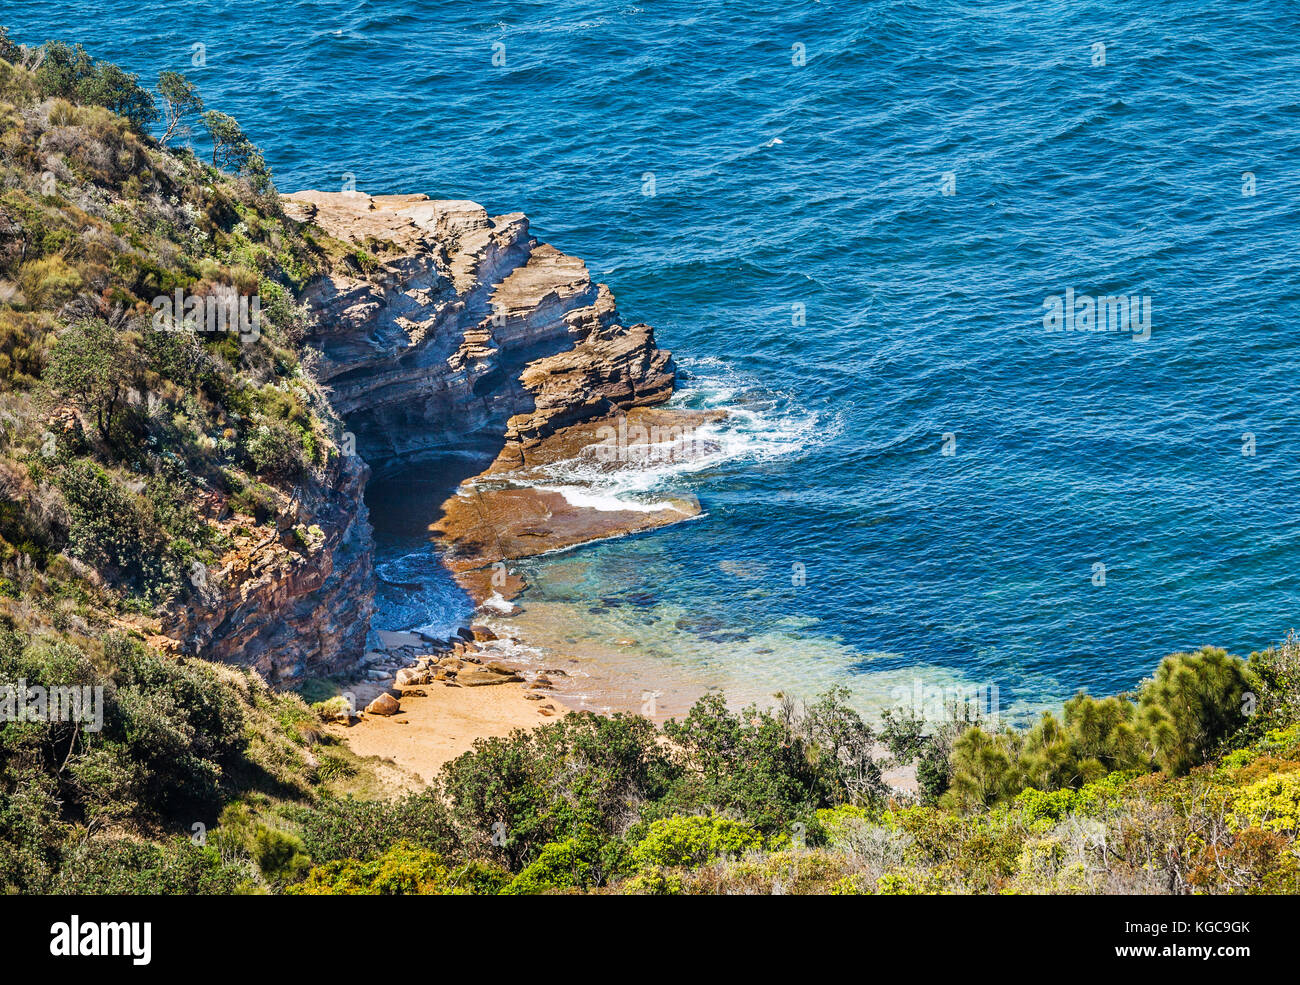 Australia, New South Wales, Central Coast, Bouddi National Park, view of secluded Bullimah Beach from Bullimah Lookout - Stock Image